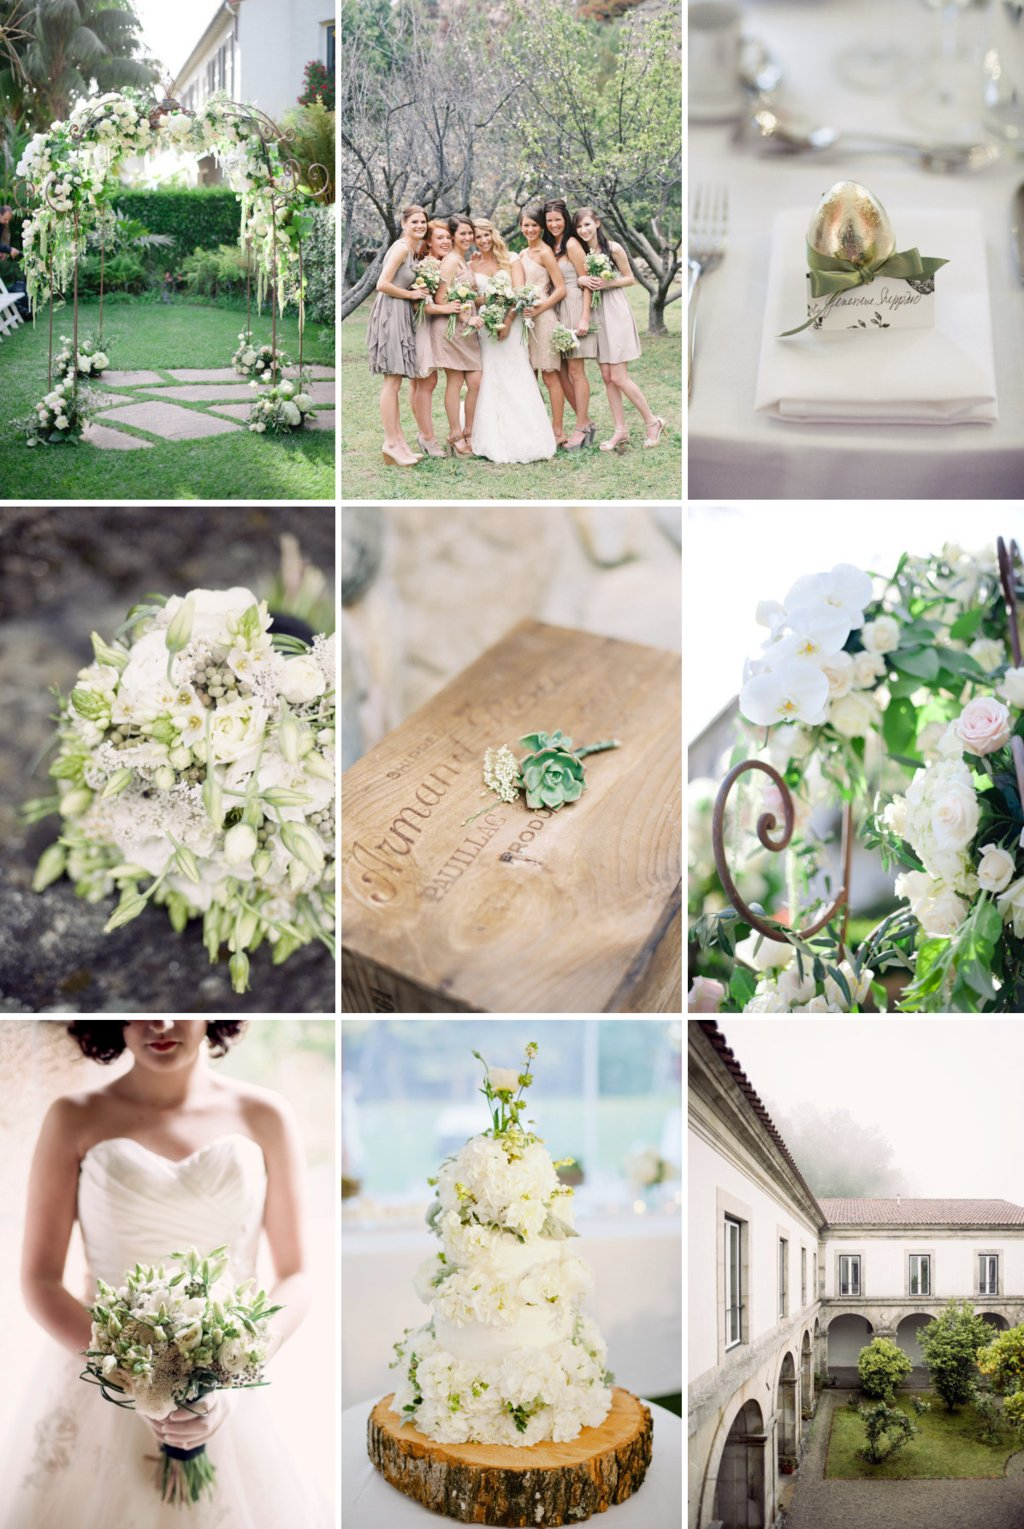 Elegant-wedding-colors-soft-greens-creams-neutrals.full